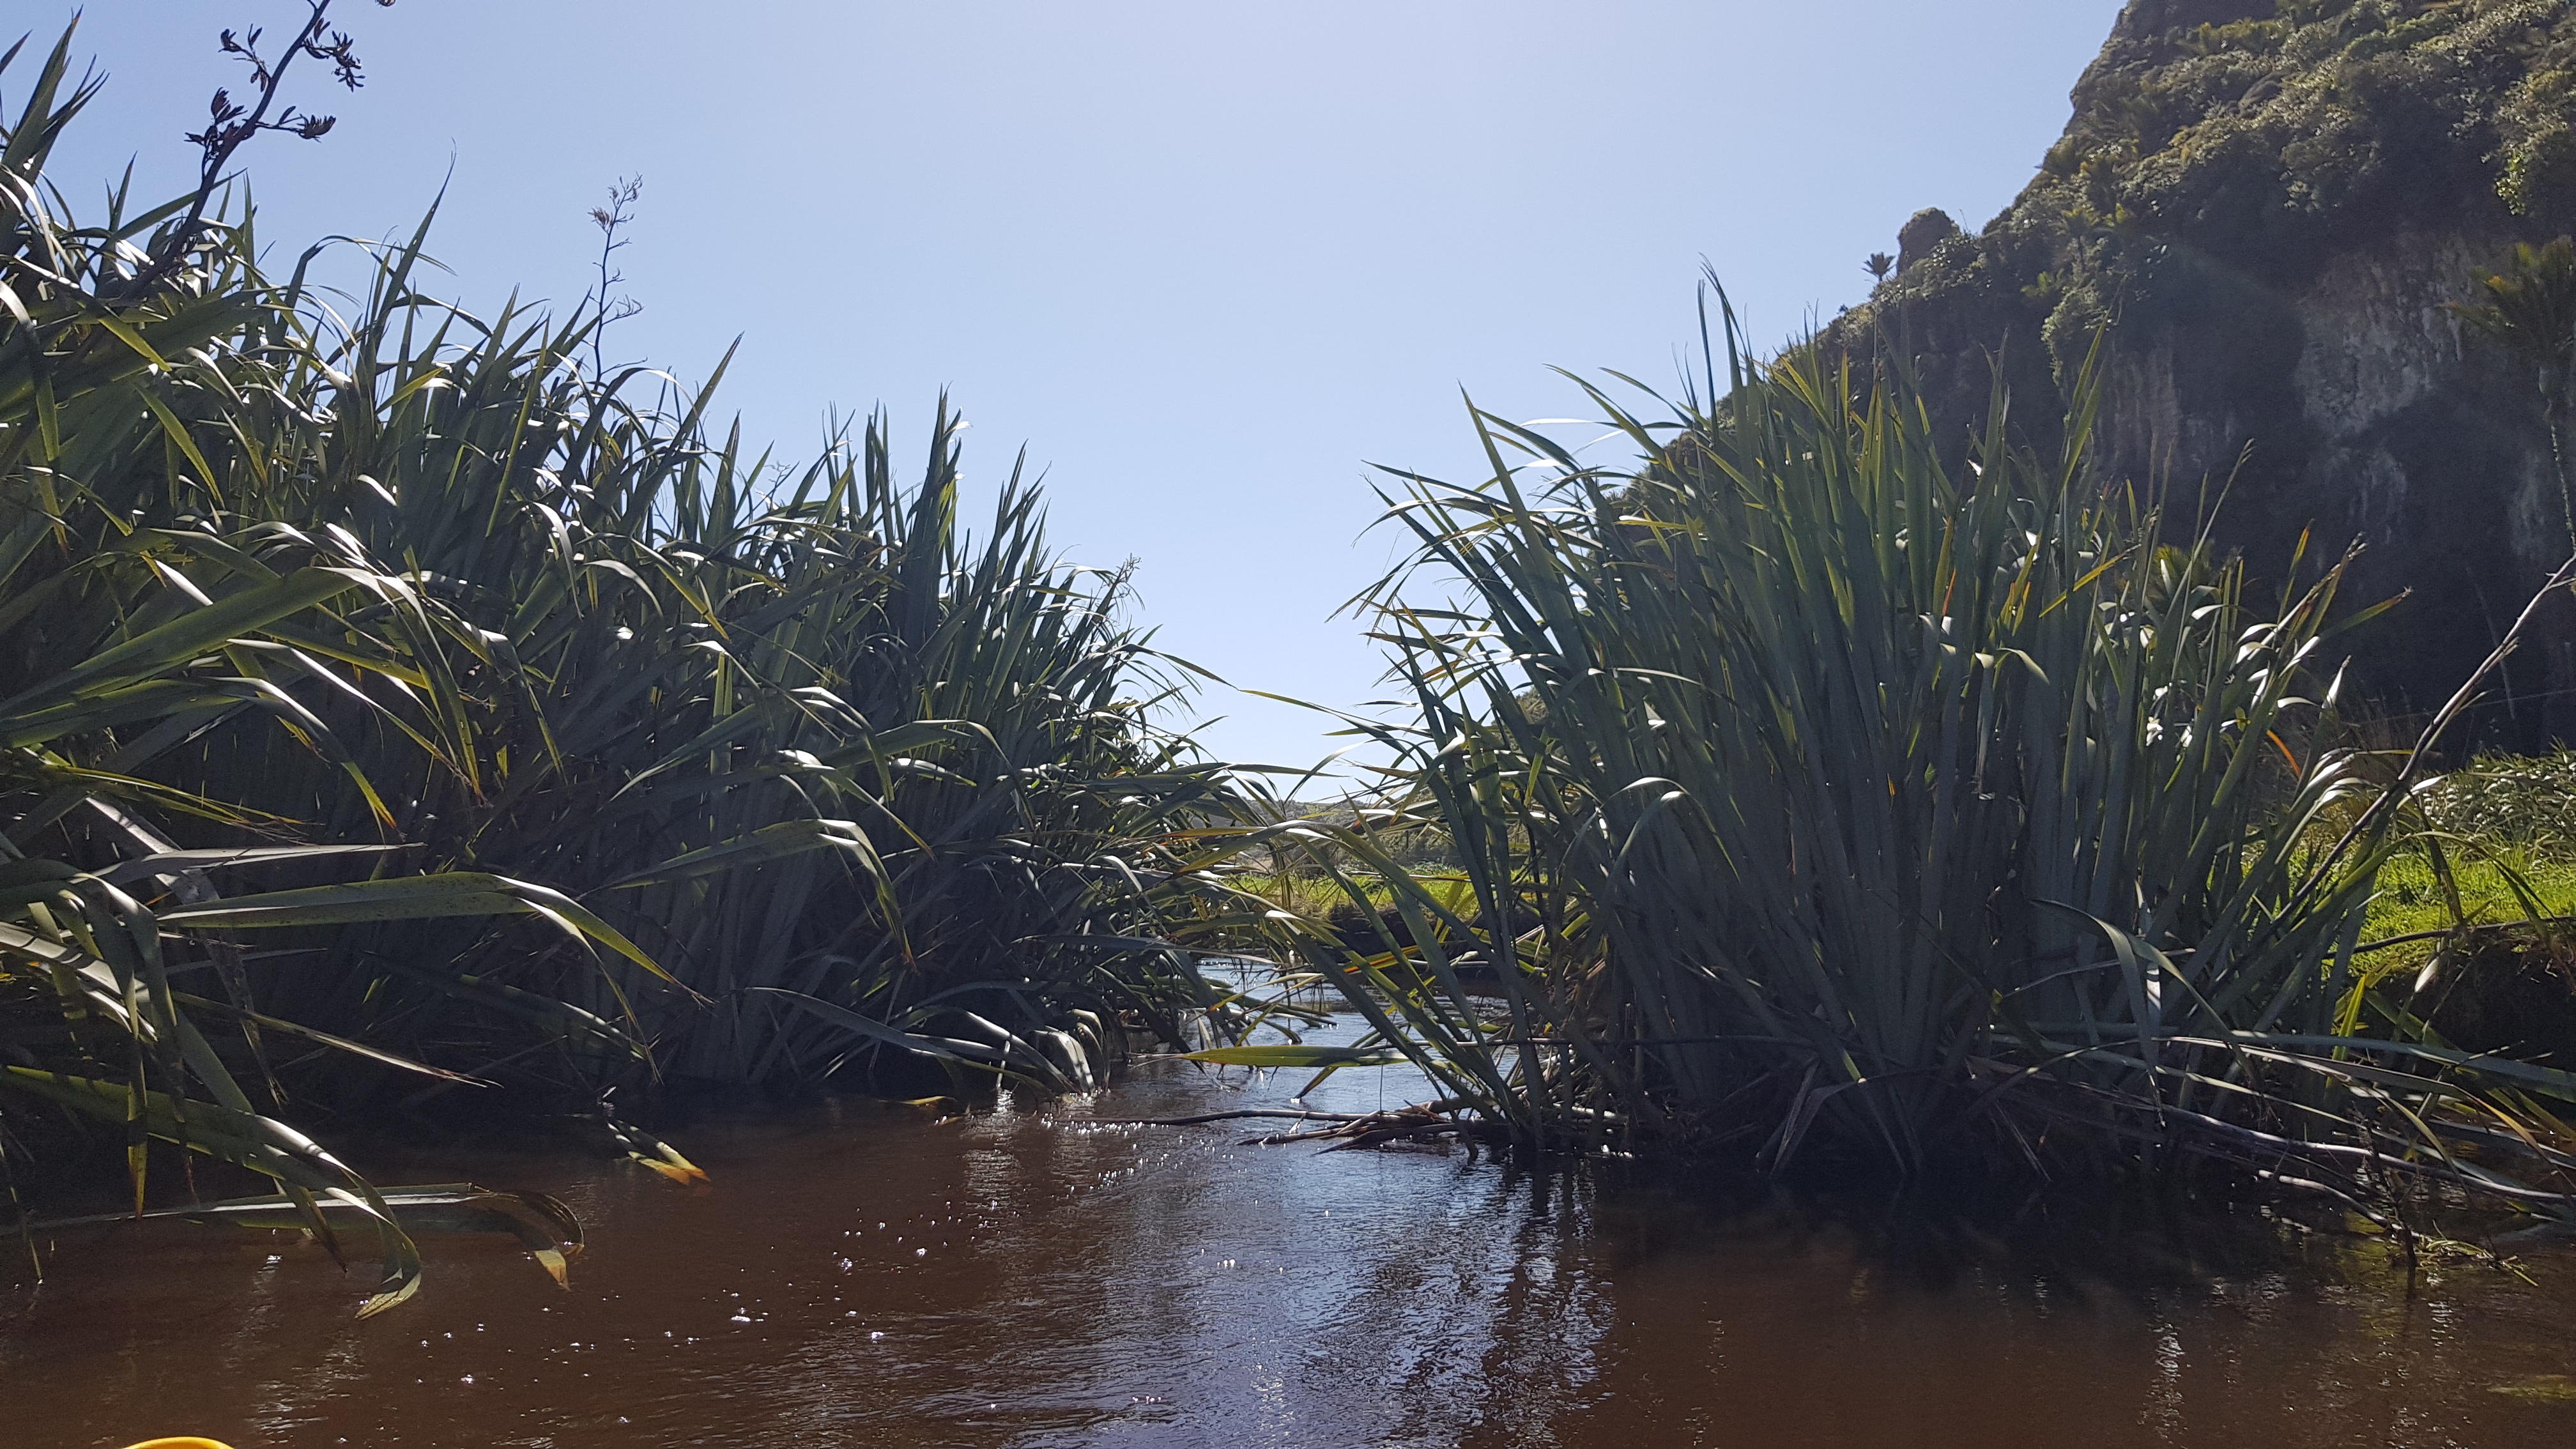 Paddling up Kōwhai Creek to Lake Otuhie